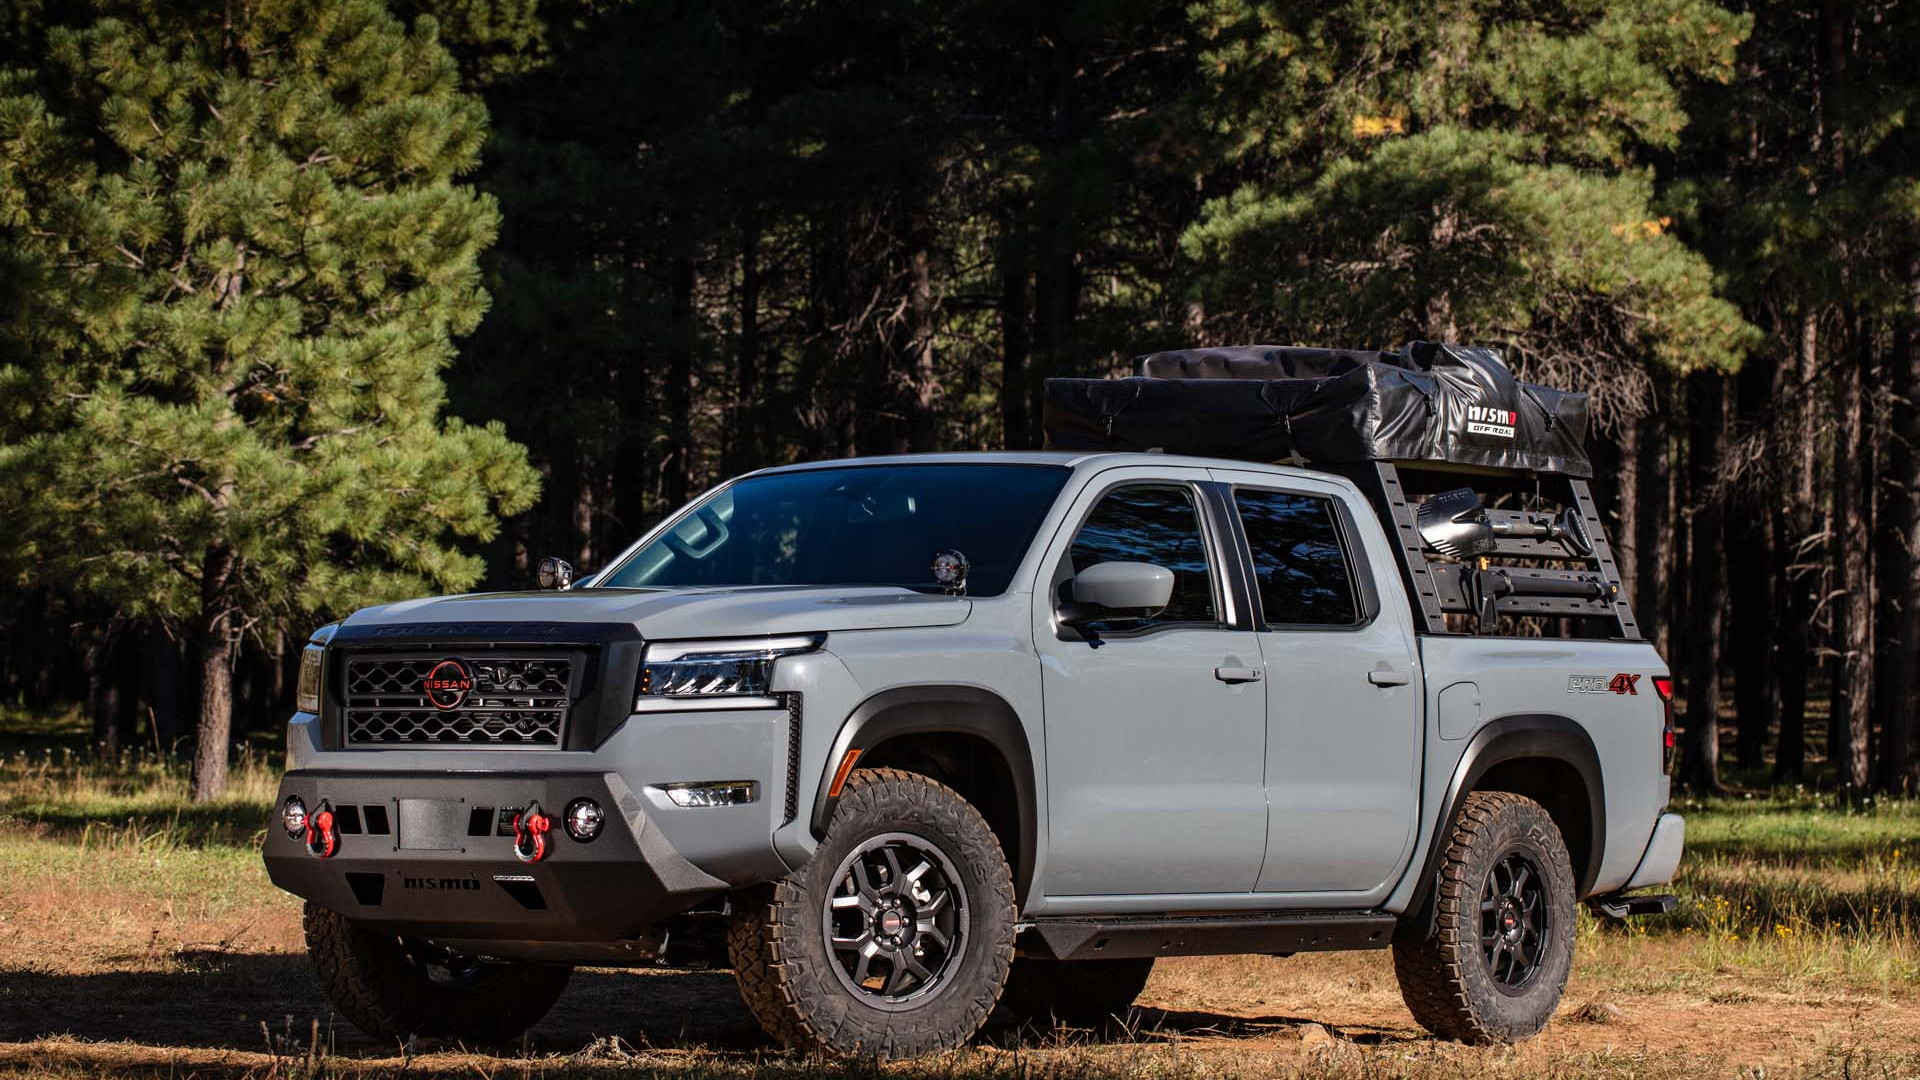 2022 Nissan Frontier equipped with Nismo off-road parts